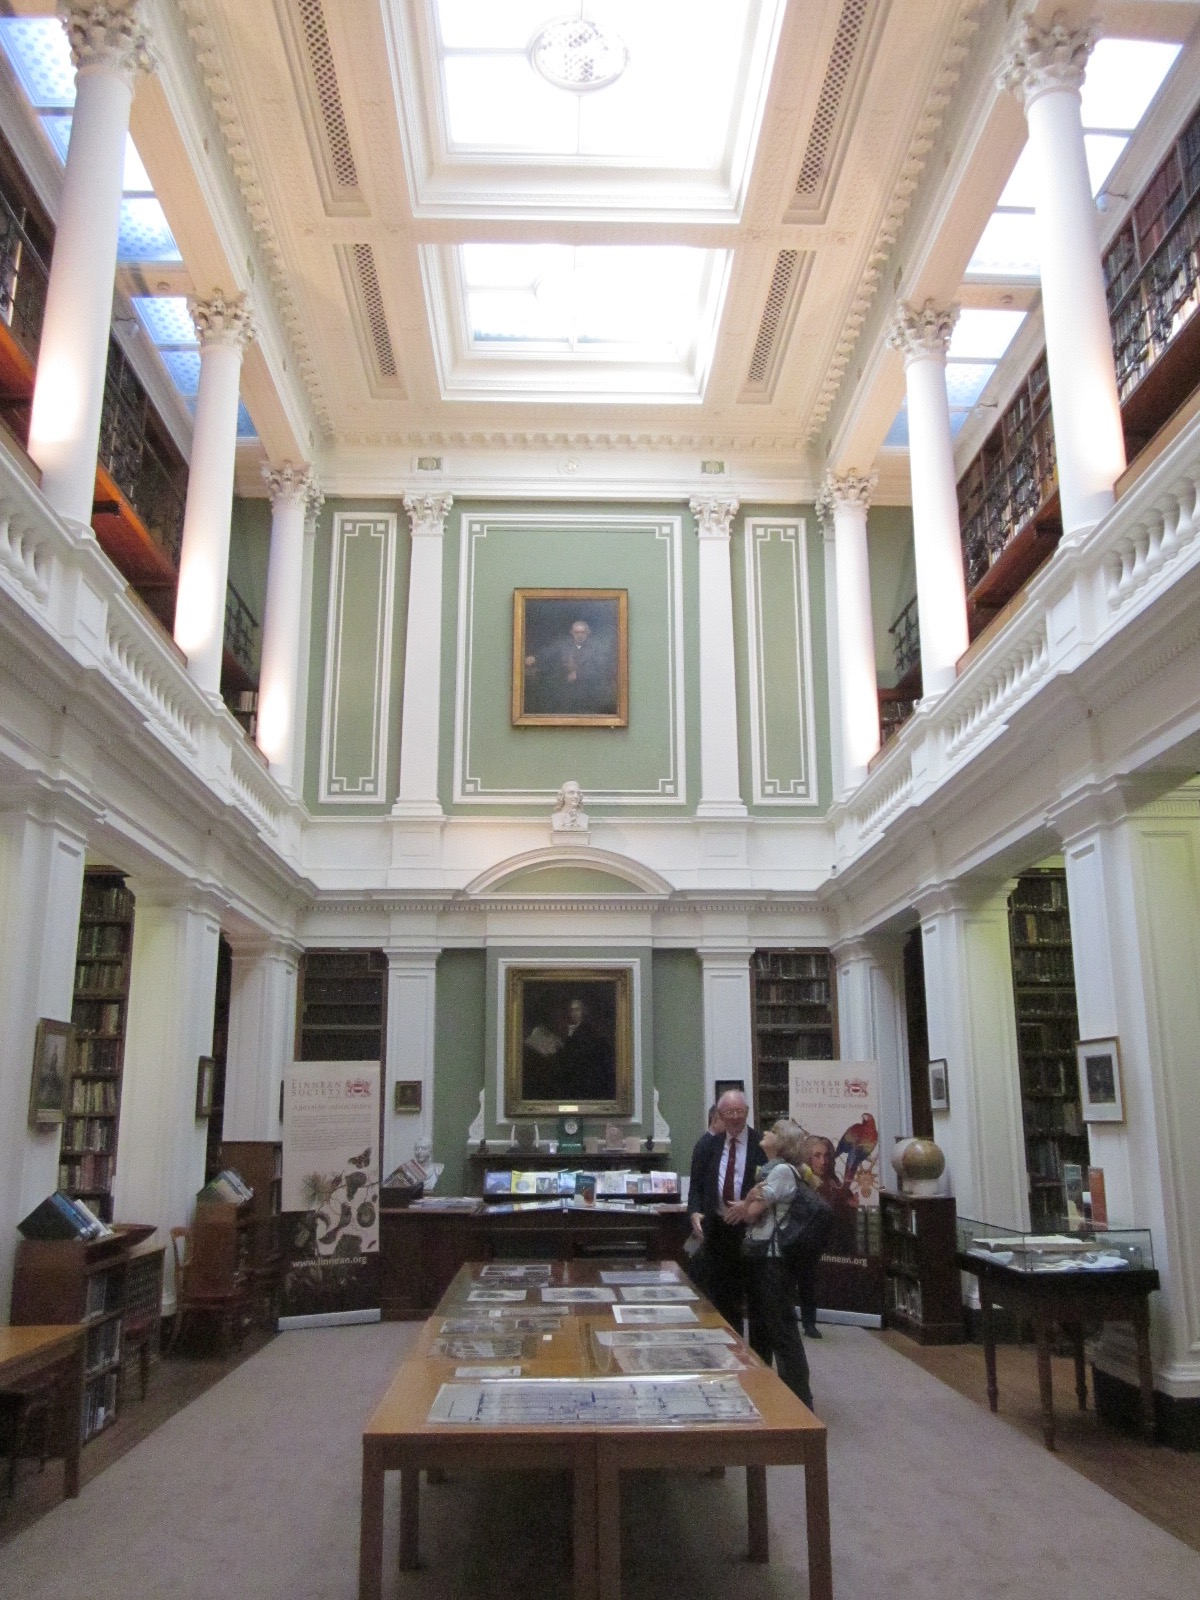 The Linnean Society library